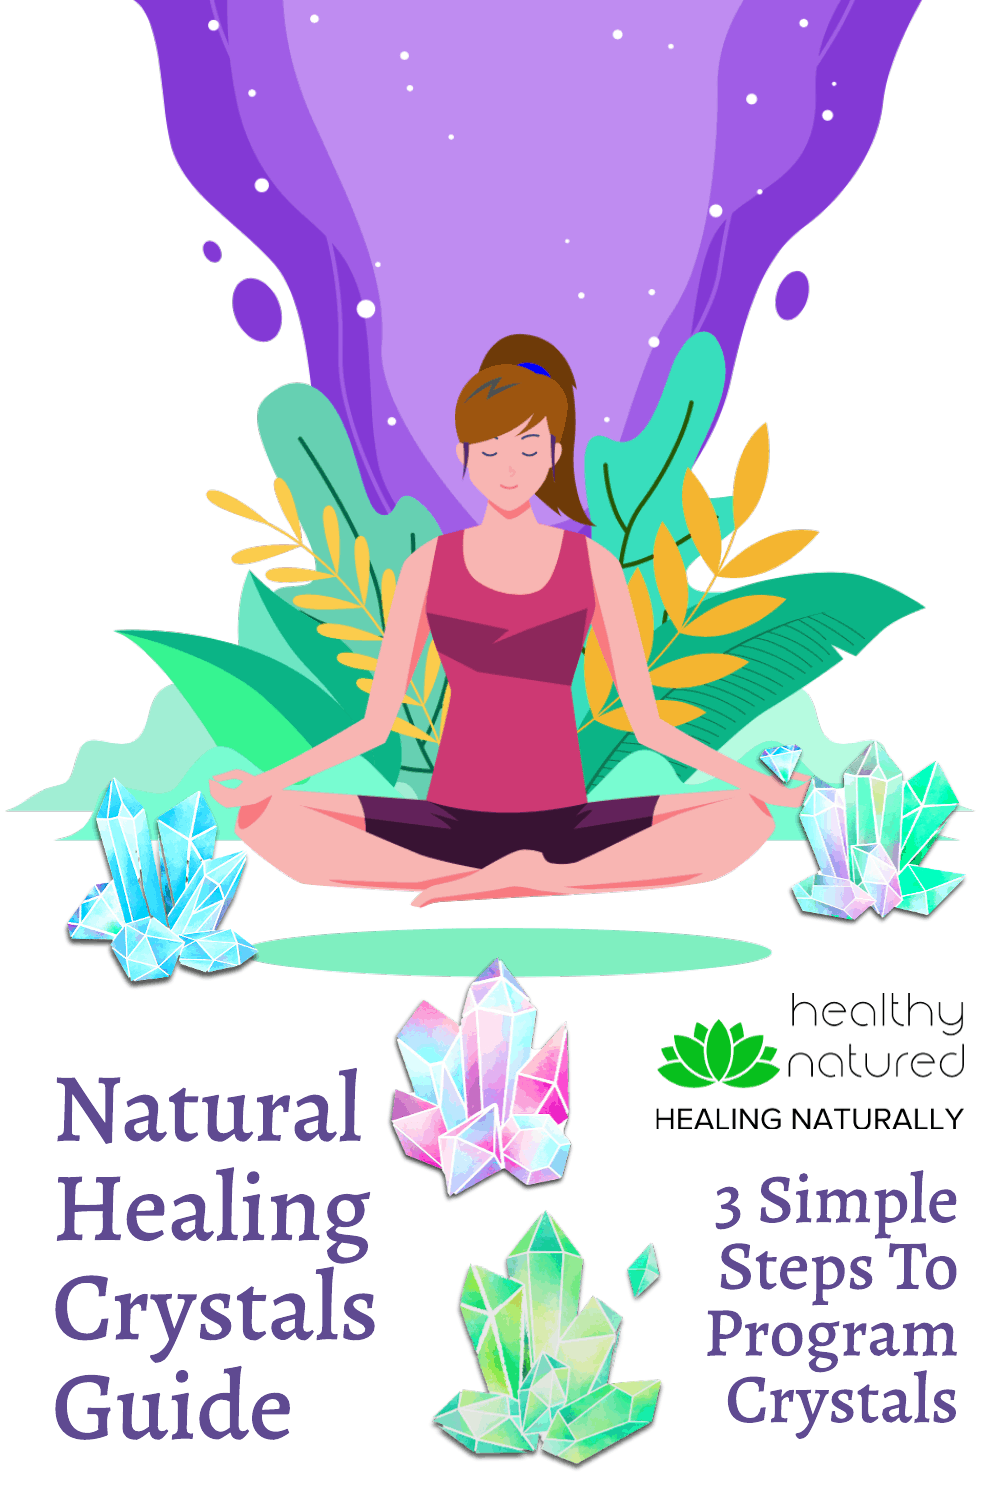 Natural Healing Crystals Guide – 3 Simple Steps To Program Crystals For Healing.